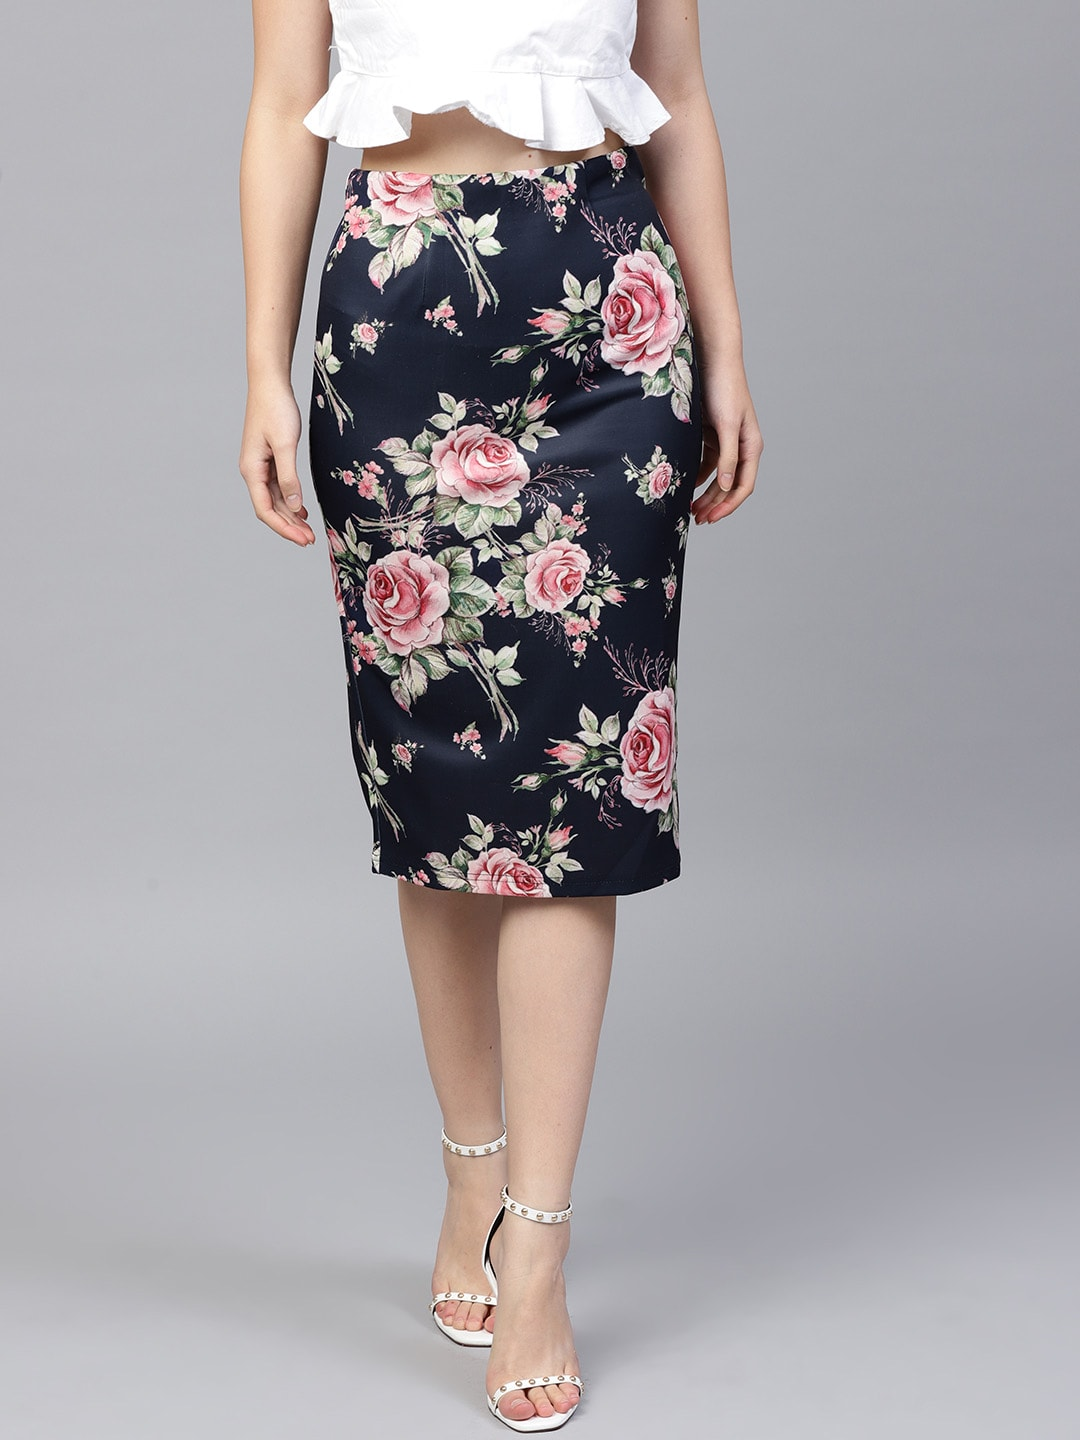 d4ff00437e35 Pen Pencil Skirts - Buy Pen Pencil Skirts online in India